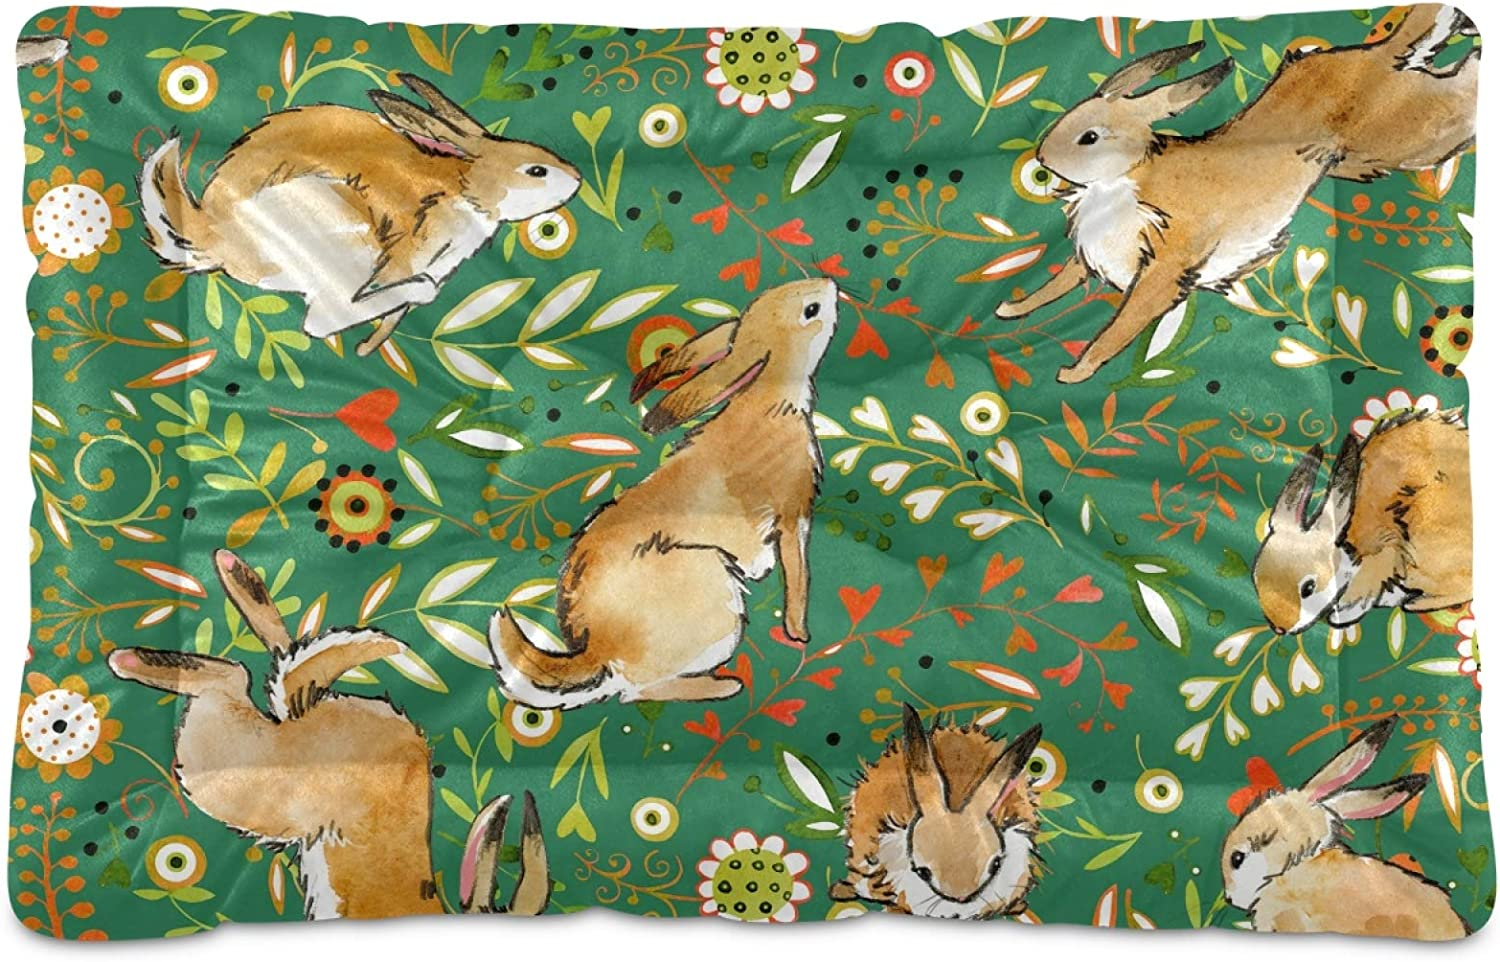 Dog Bed Brand new Rabbit Gifts Color Flowers for Mat Mattress Washable Crate